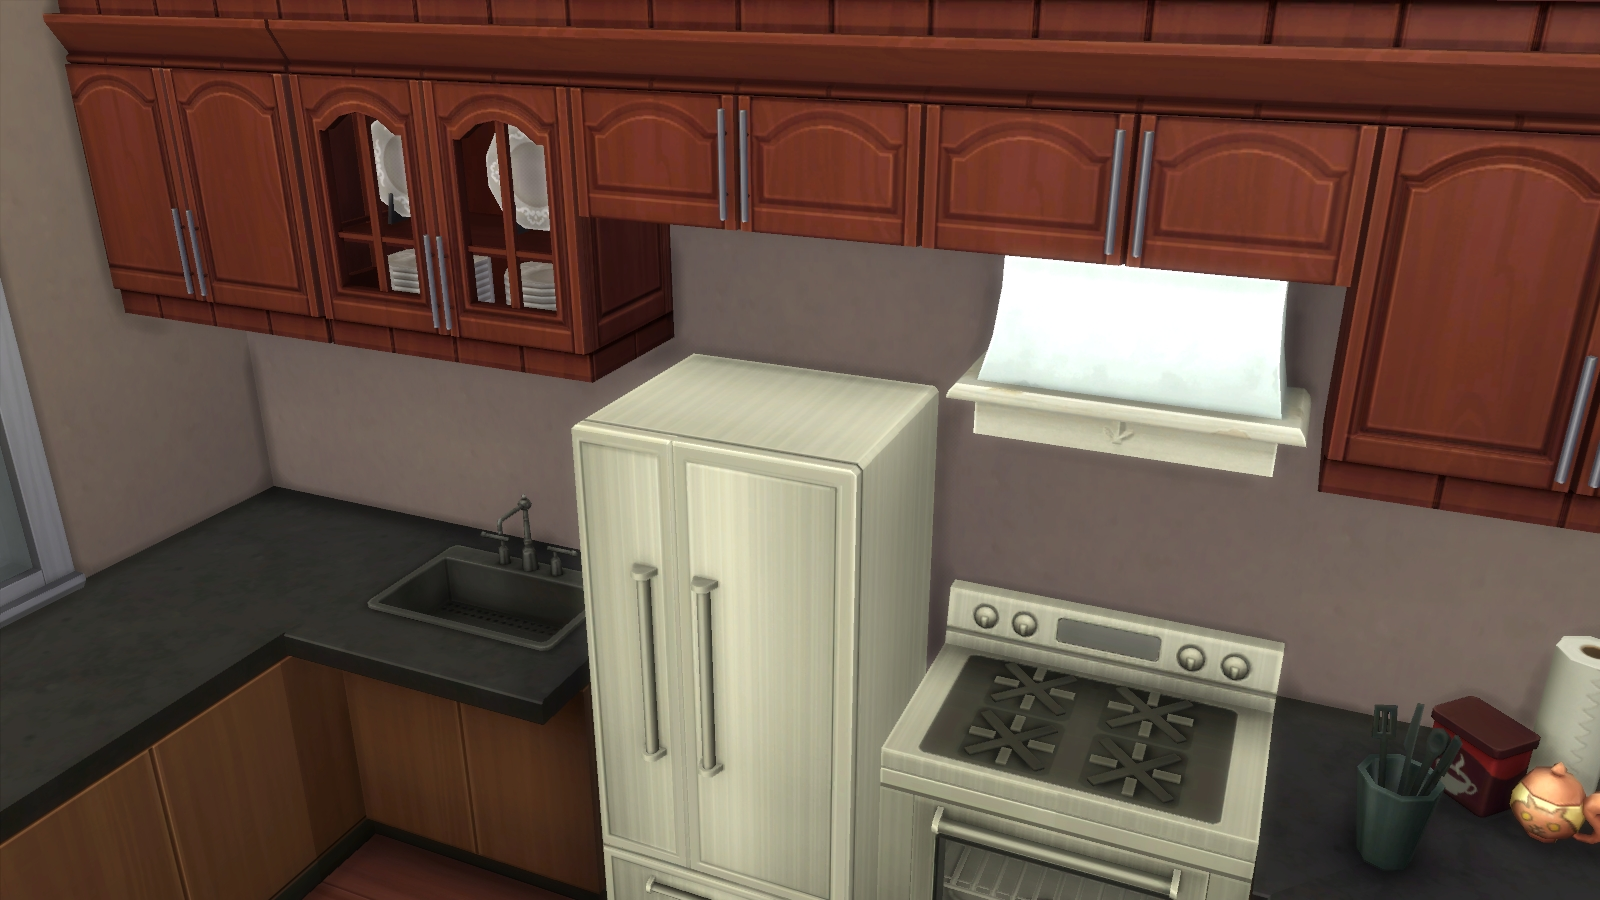 Setting up a bakery in the sims 4 get to work simcitizens for Where to get a kitchen from